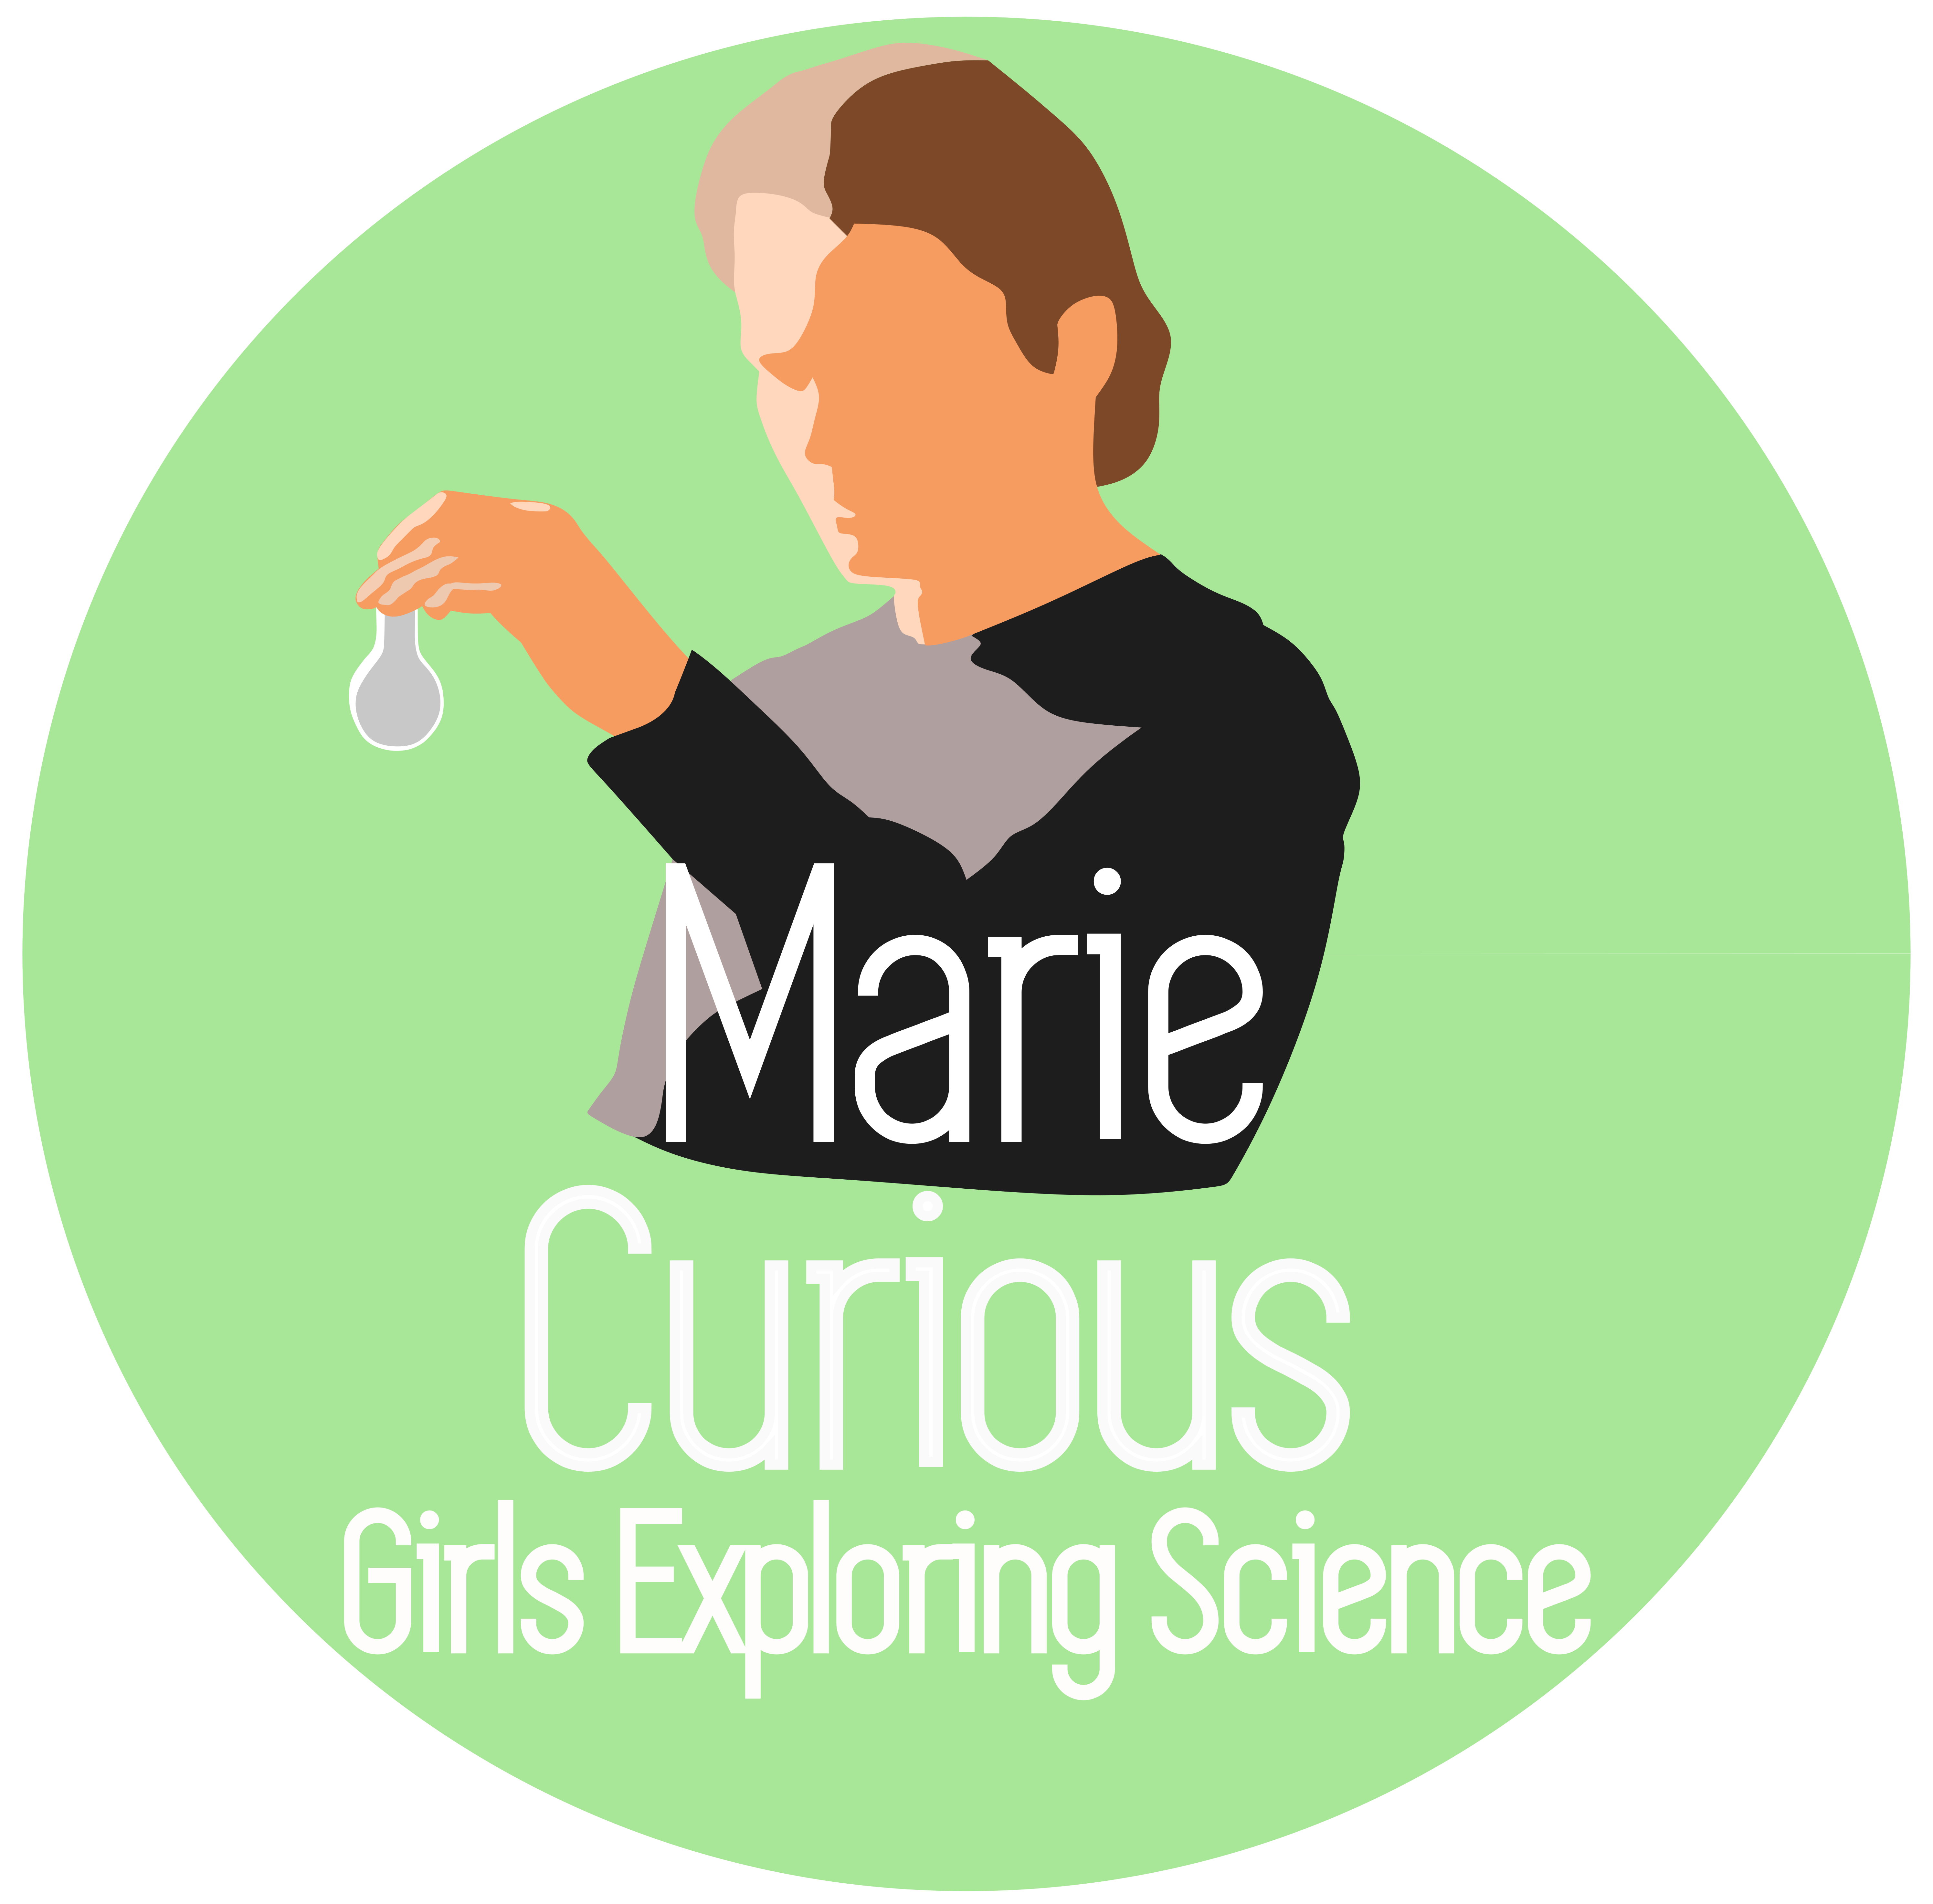 marieCurious5logo.png